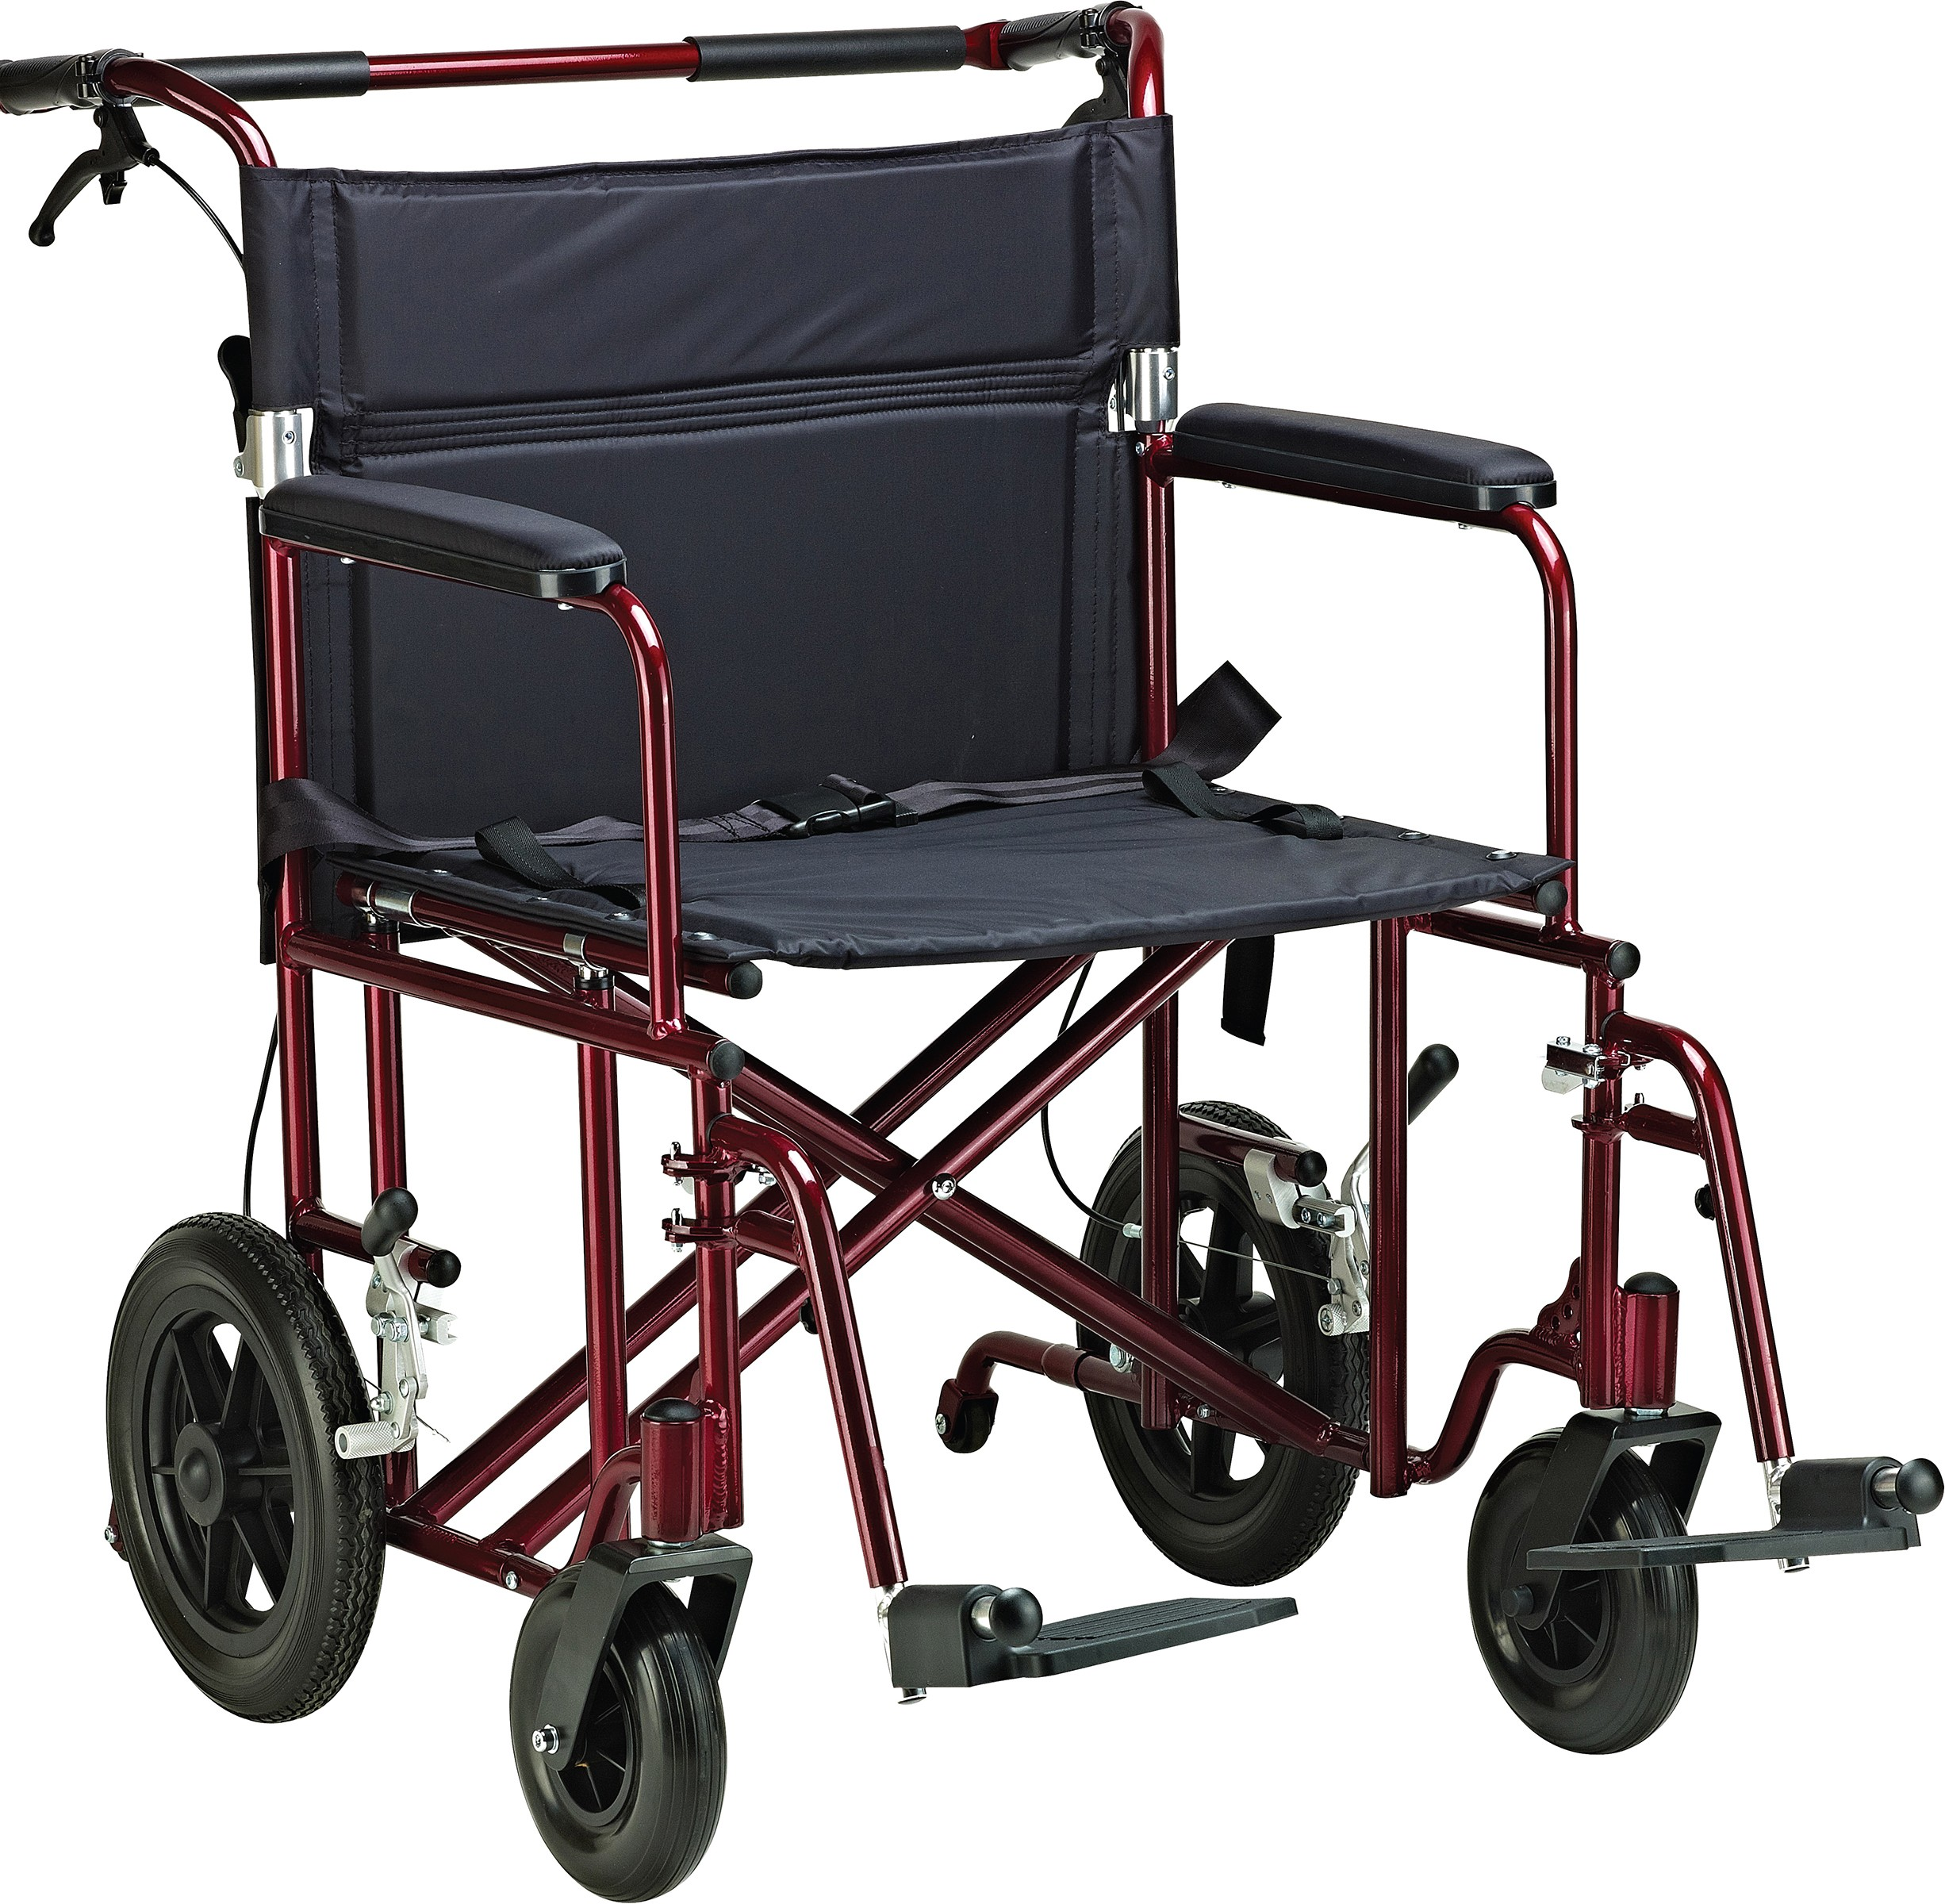 Transport Chair Replacement Wheels ... Bariatric Aluminum Transport Chair With 12in Rear Flat-Free Wheels